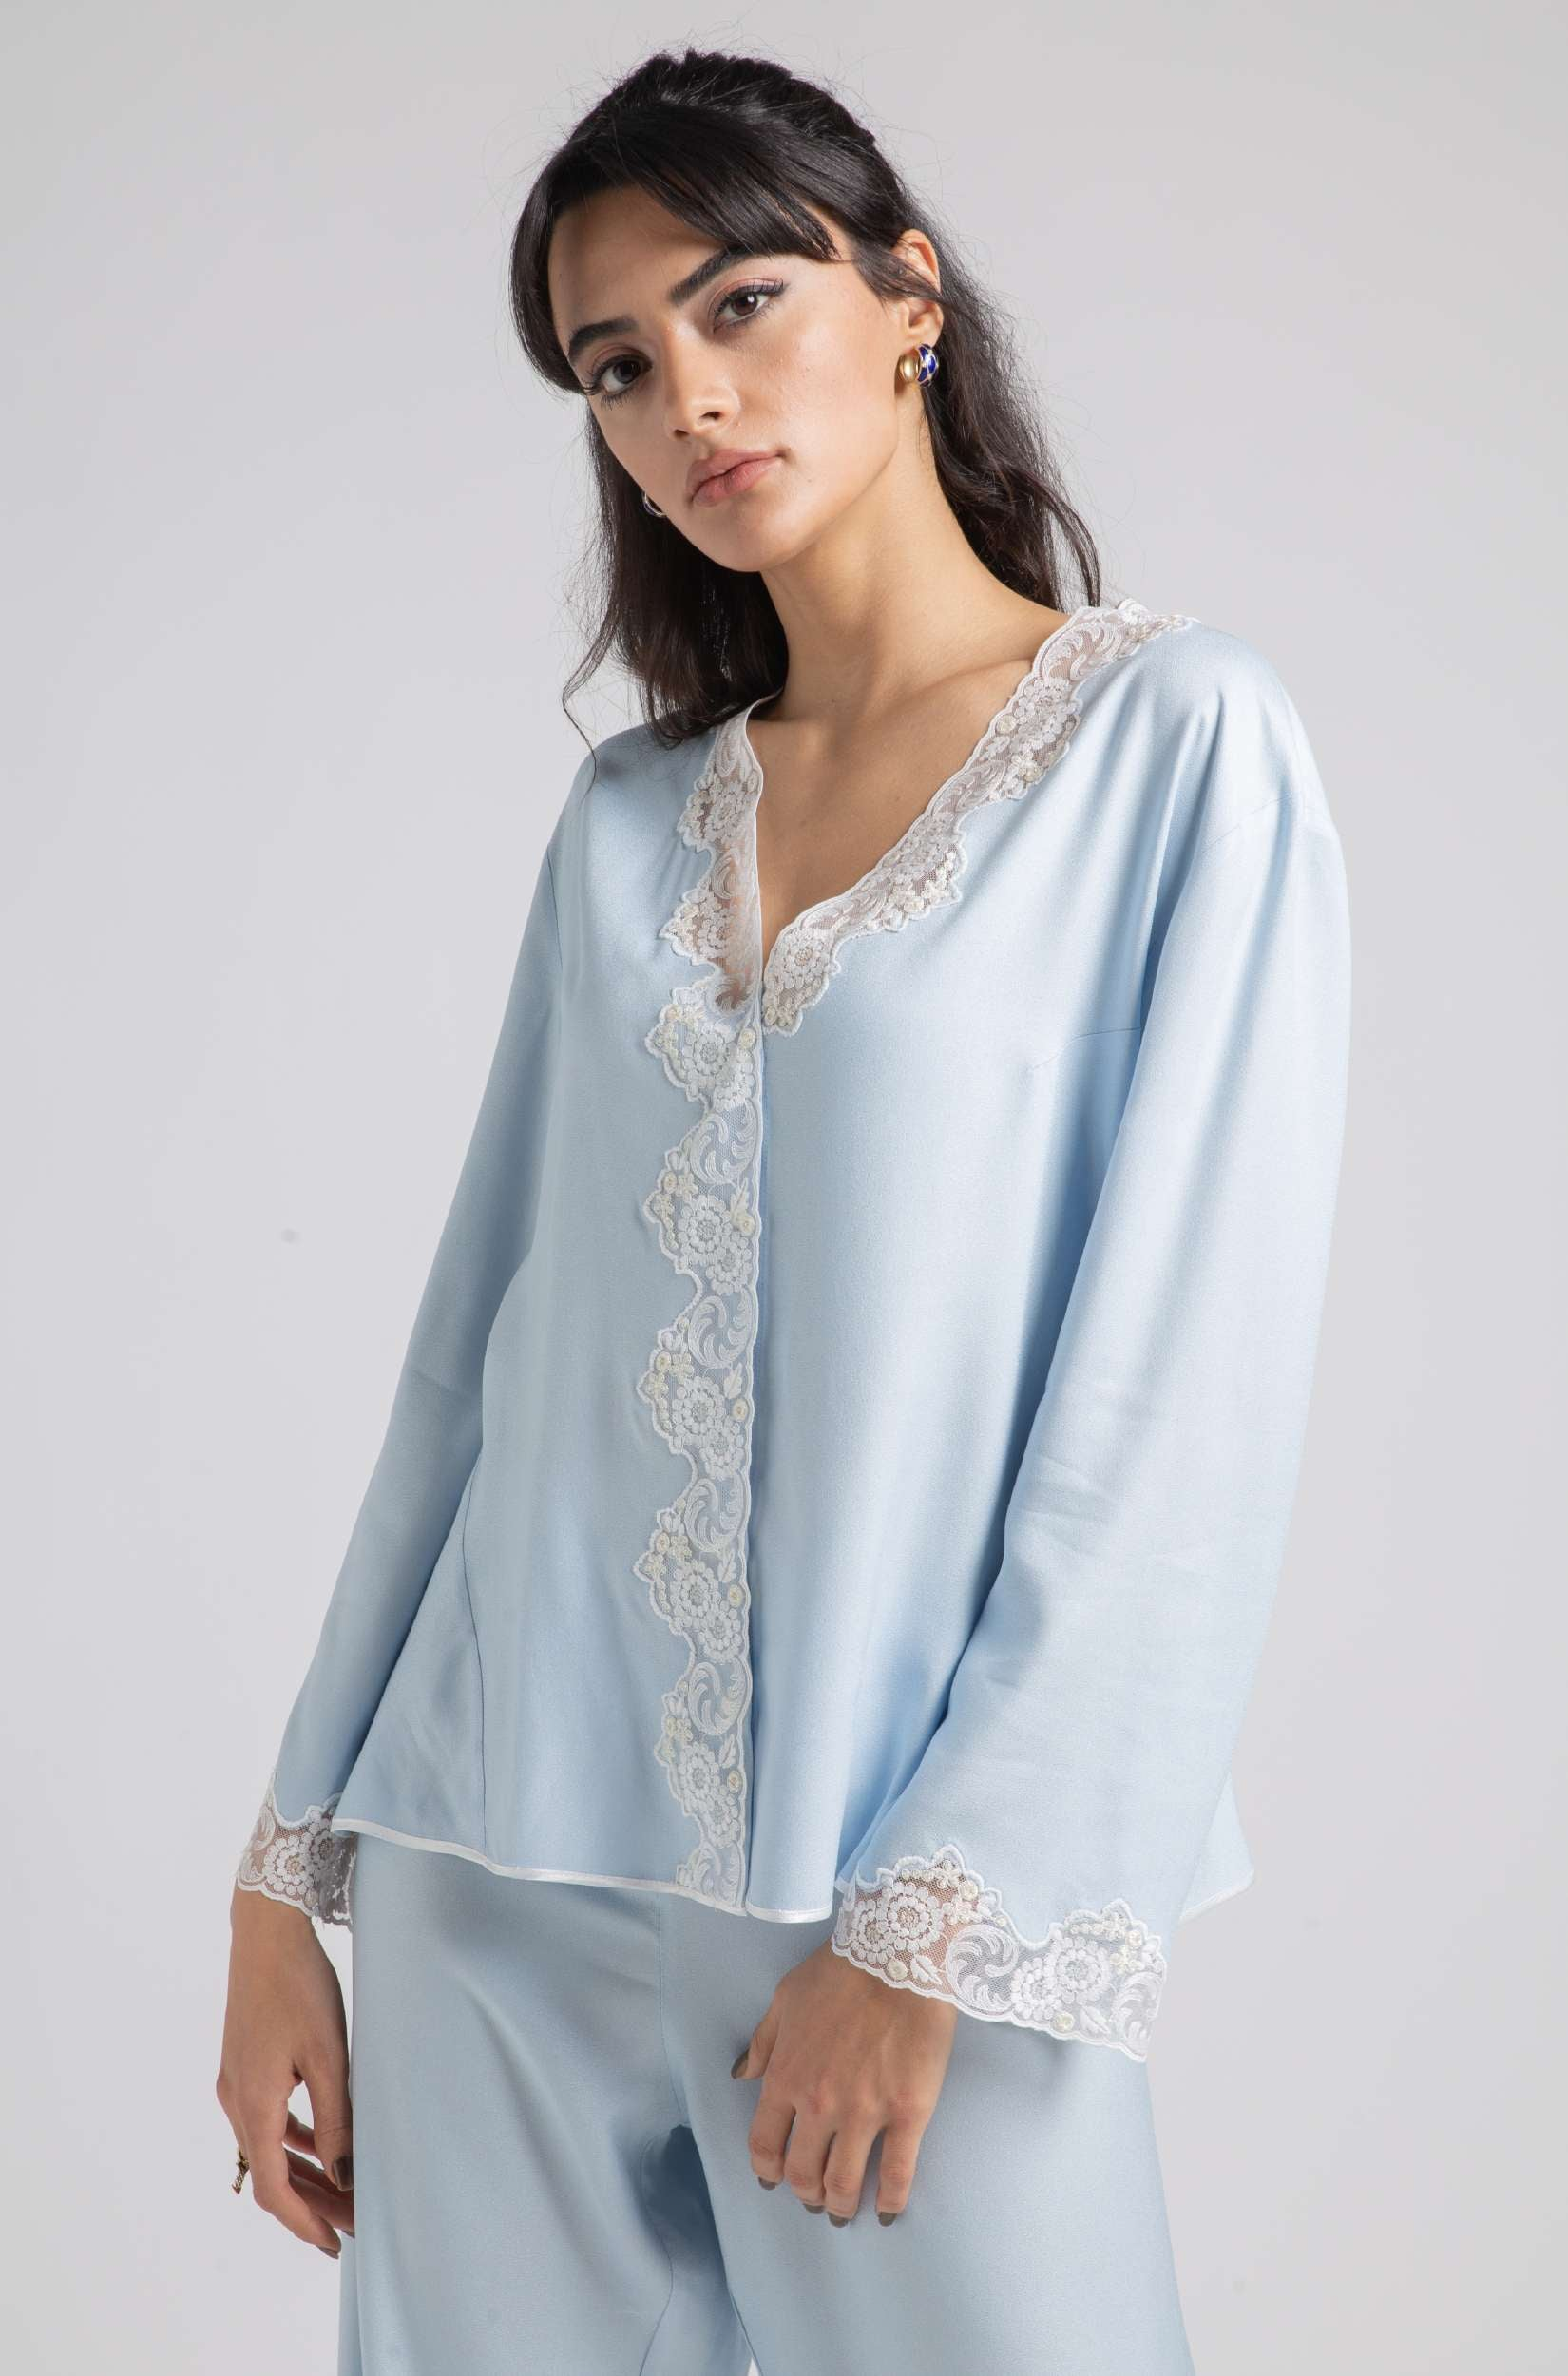 Pajama - Baby Blue Sunkissed